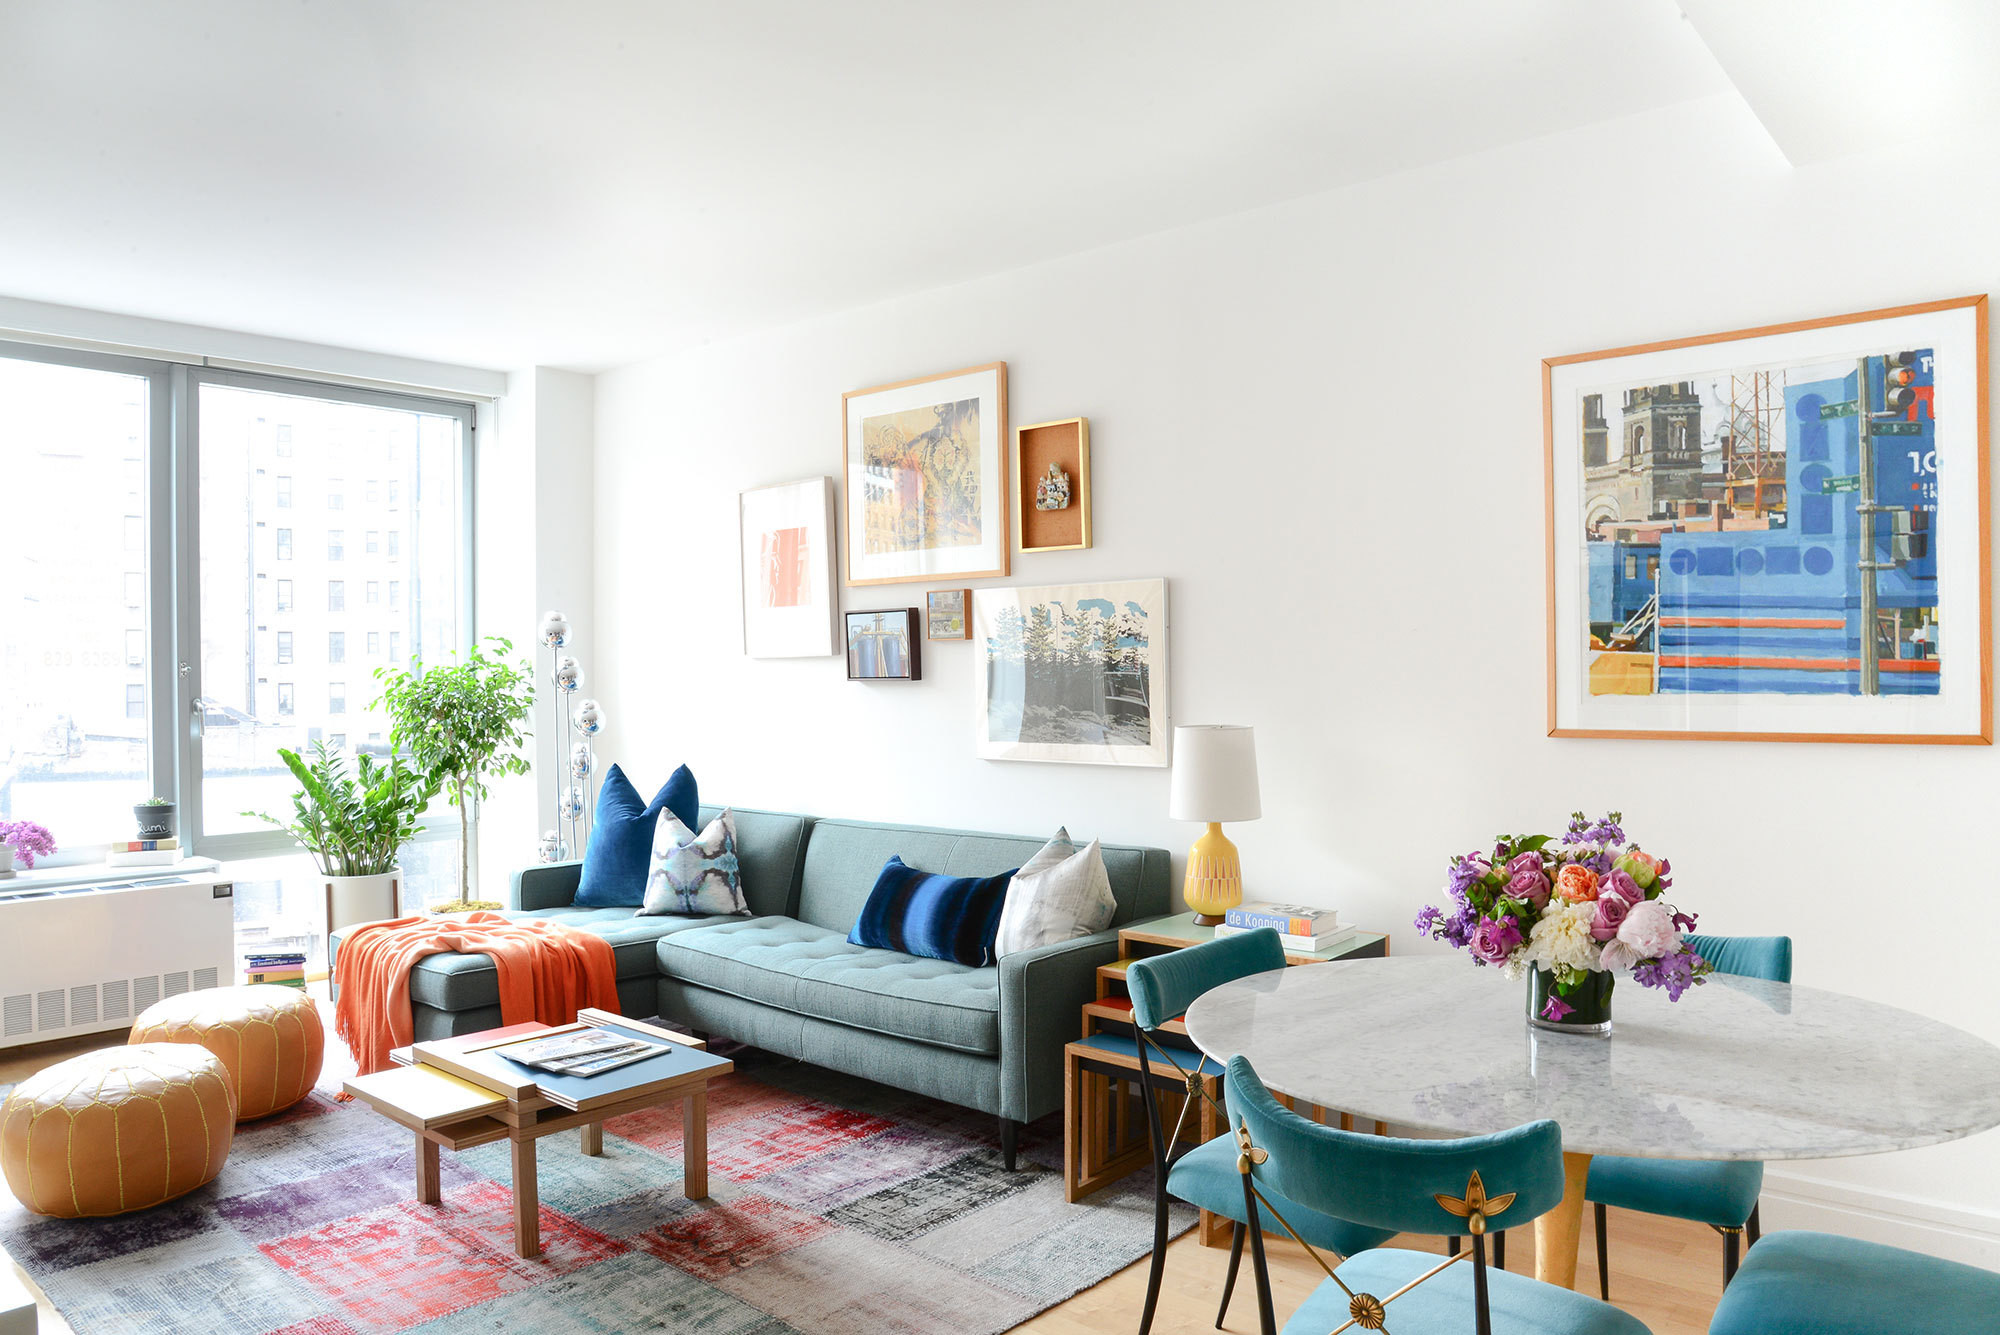 decor nyc new york style in the interior Homepolish designer Matthew Cane incorporated color and texture in a  cheerful second home in New York